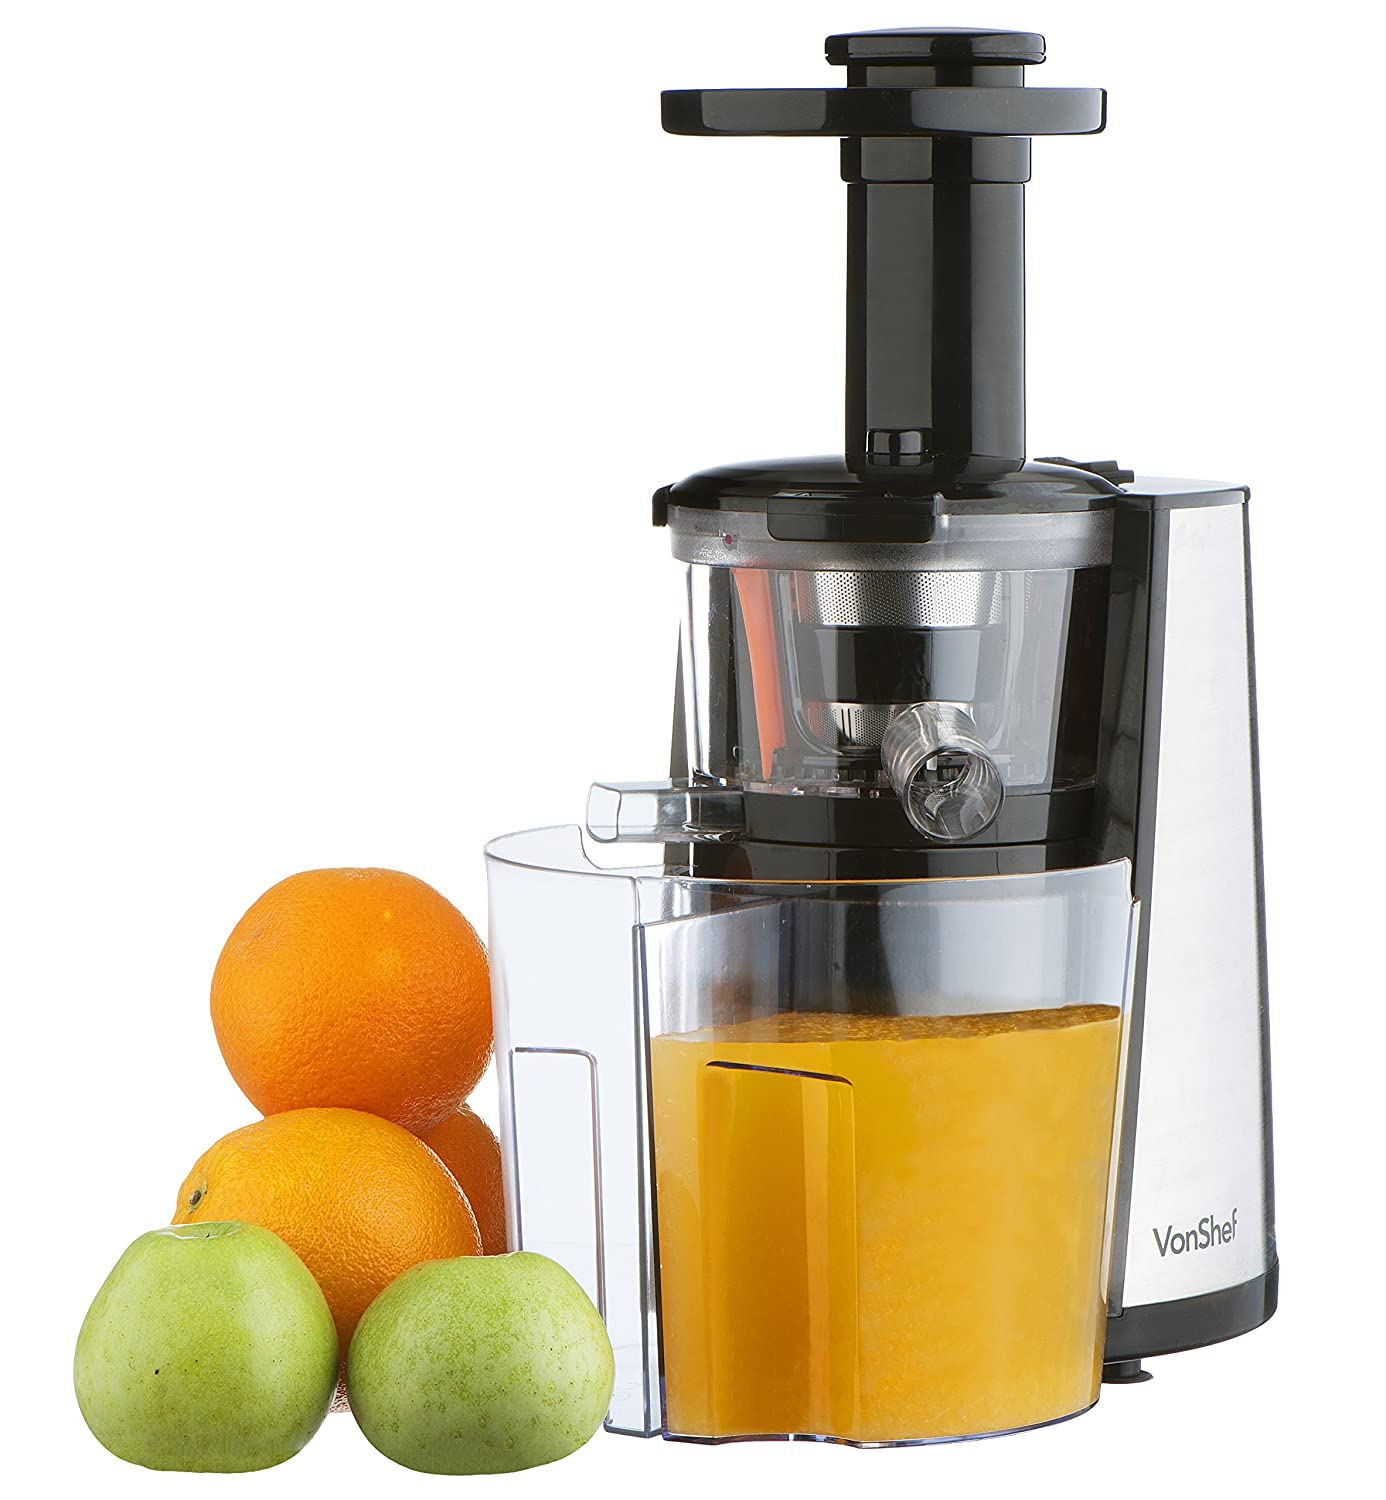 Best Masticating Juicers 2016 : Top 10 Best Masticating Juicers 2016-2017 on Flipboard